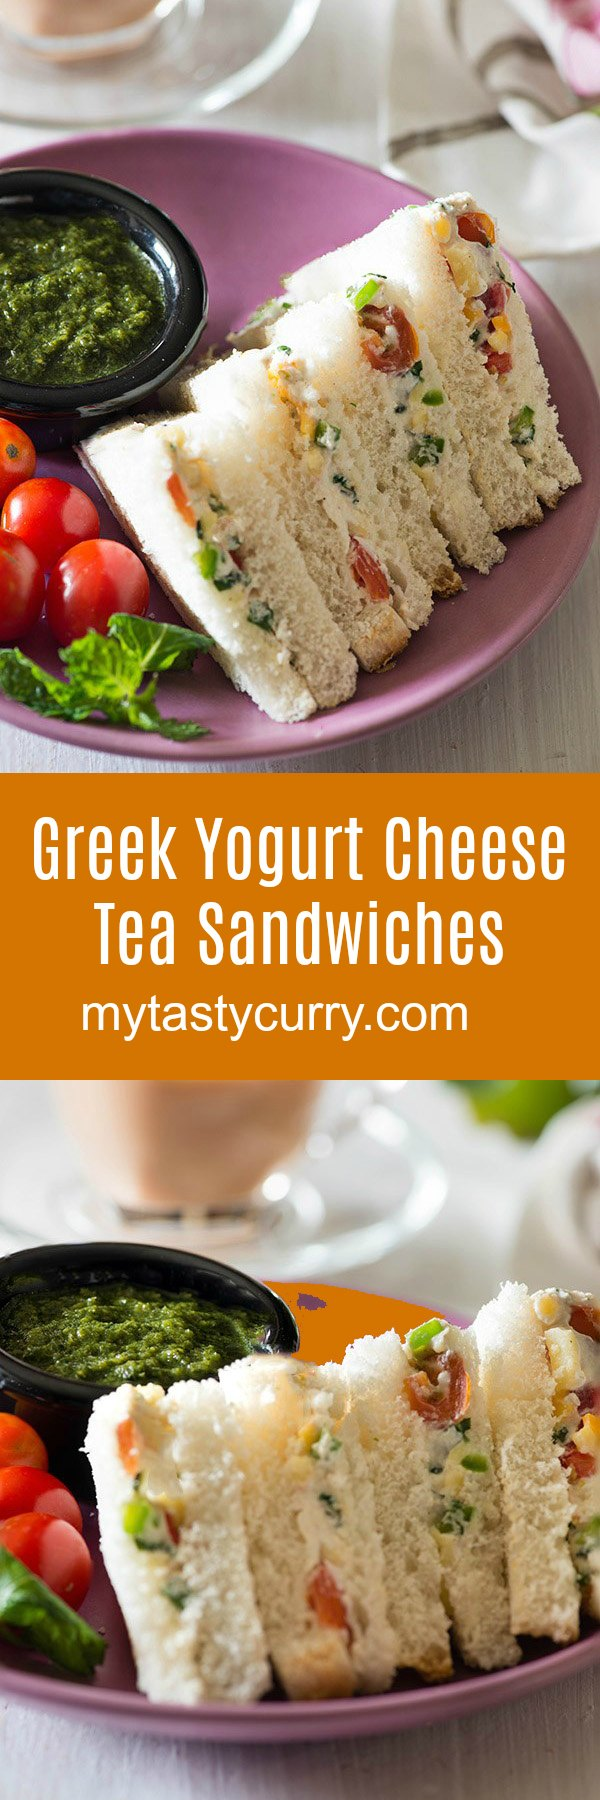 Delicious and easy Curd Sandwich recipe, with cheese and veggies in a flavorful seasoning. Curd Cheese and Veggie sandwich is a Perfect and easy sandwich for breakfast, high tea or to pack in a lunchbox.